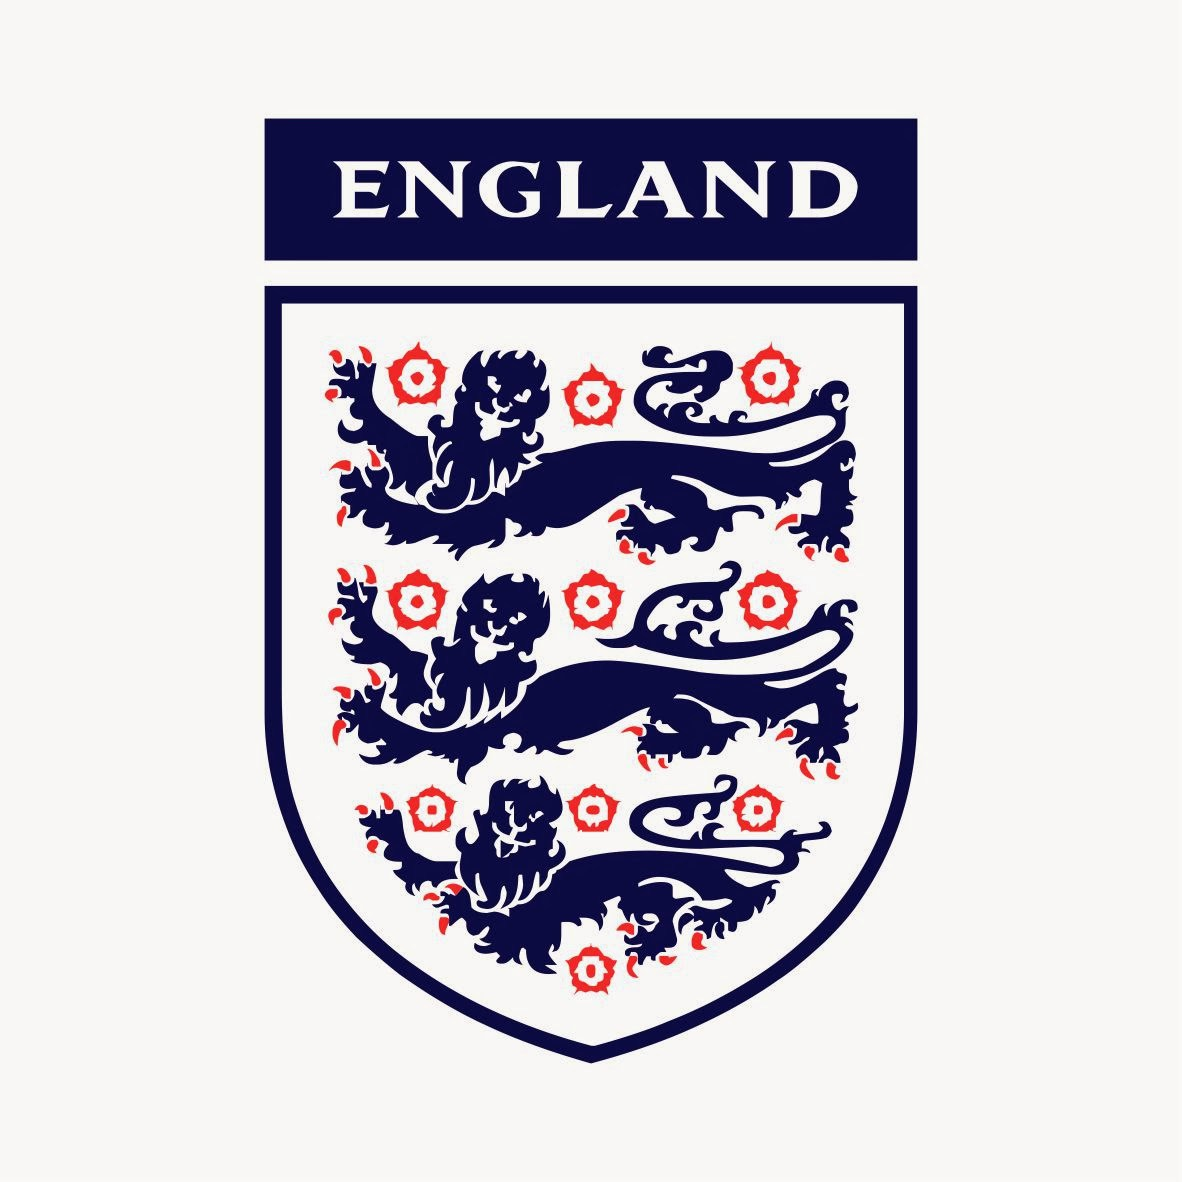 England Football Emblem Wallpaper